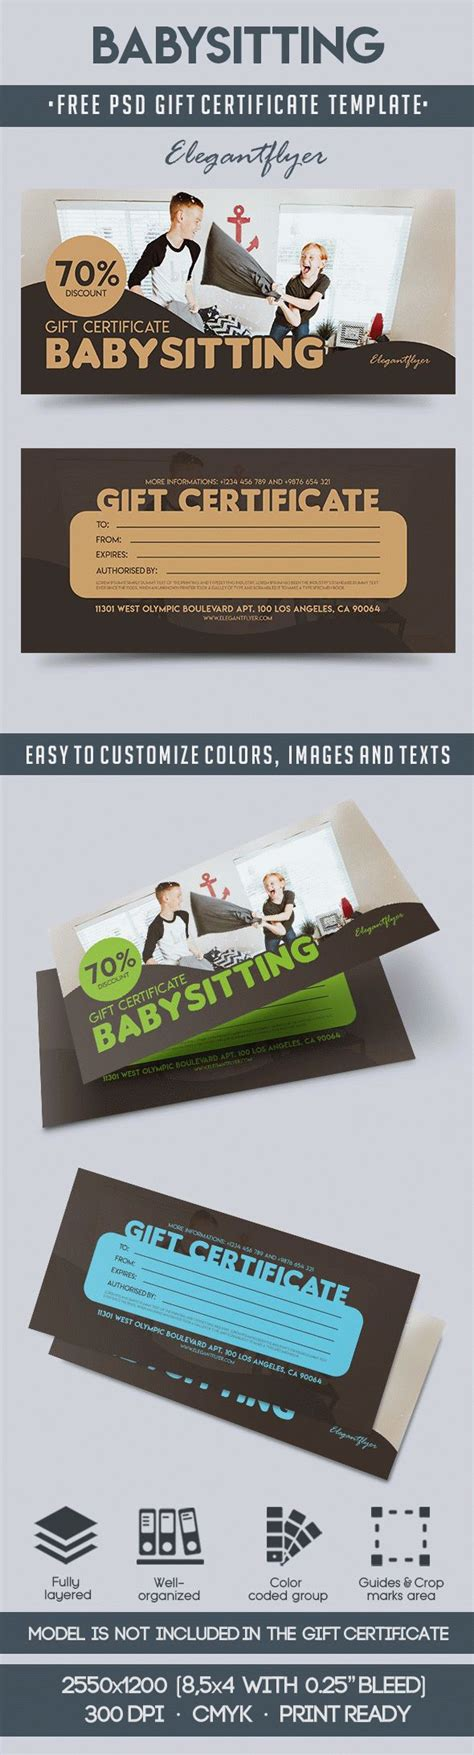 gift card template free psd babysitting free gift certificate psd template by